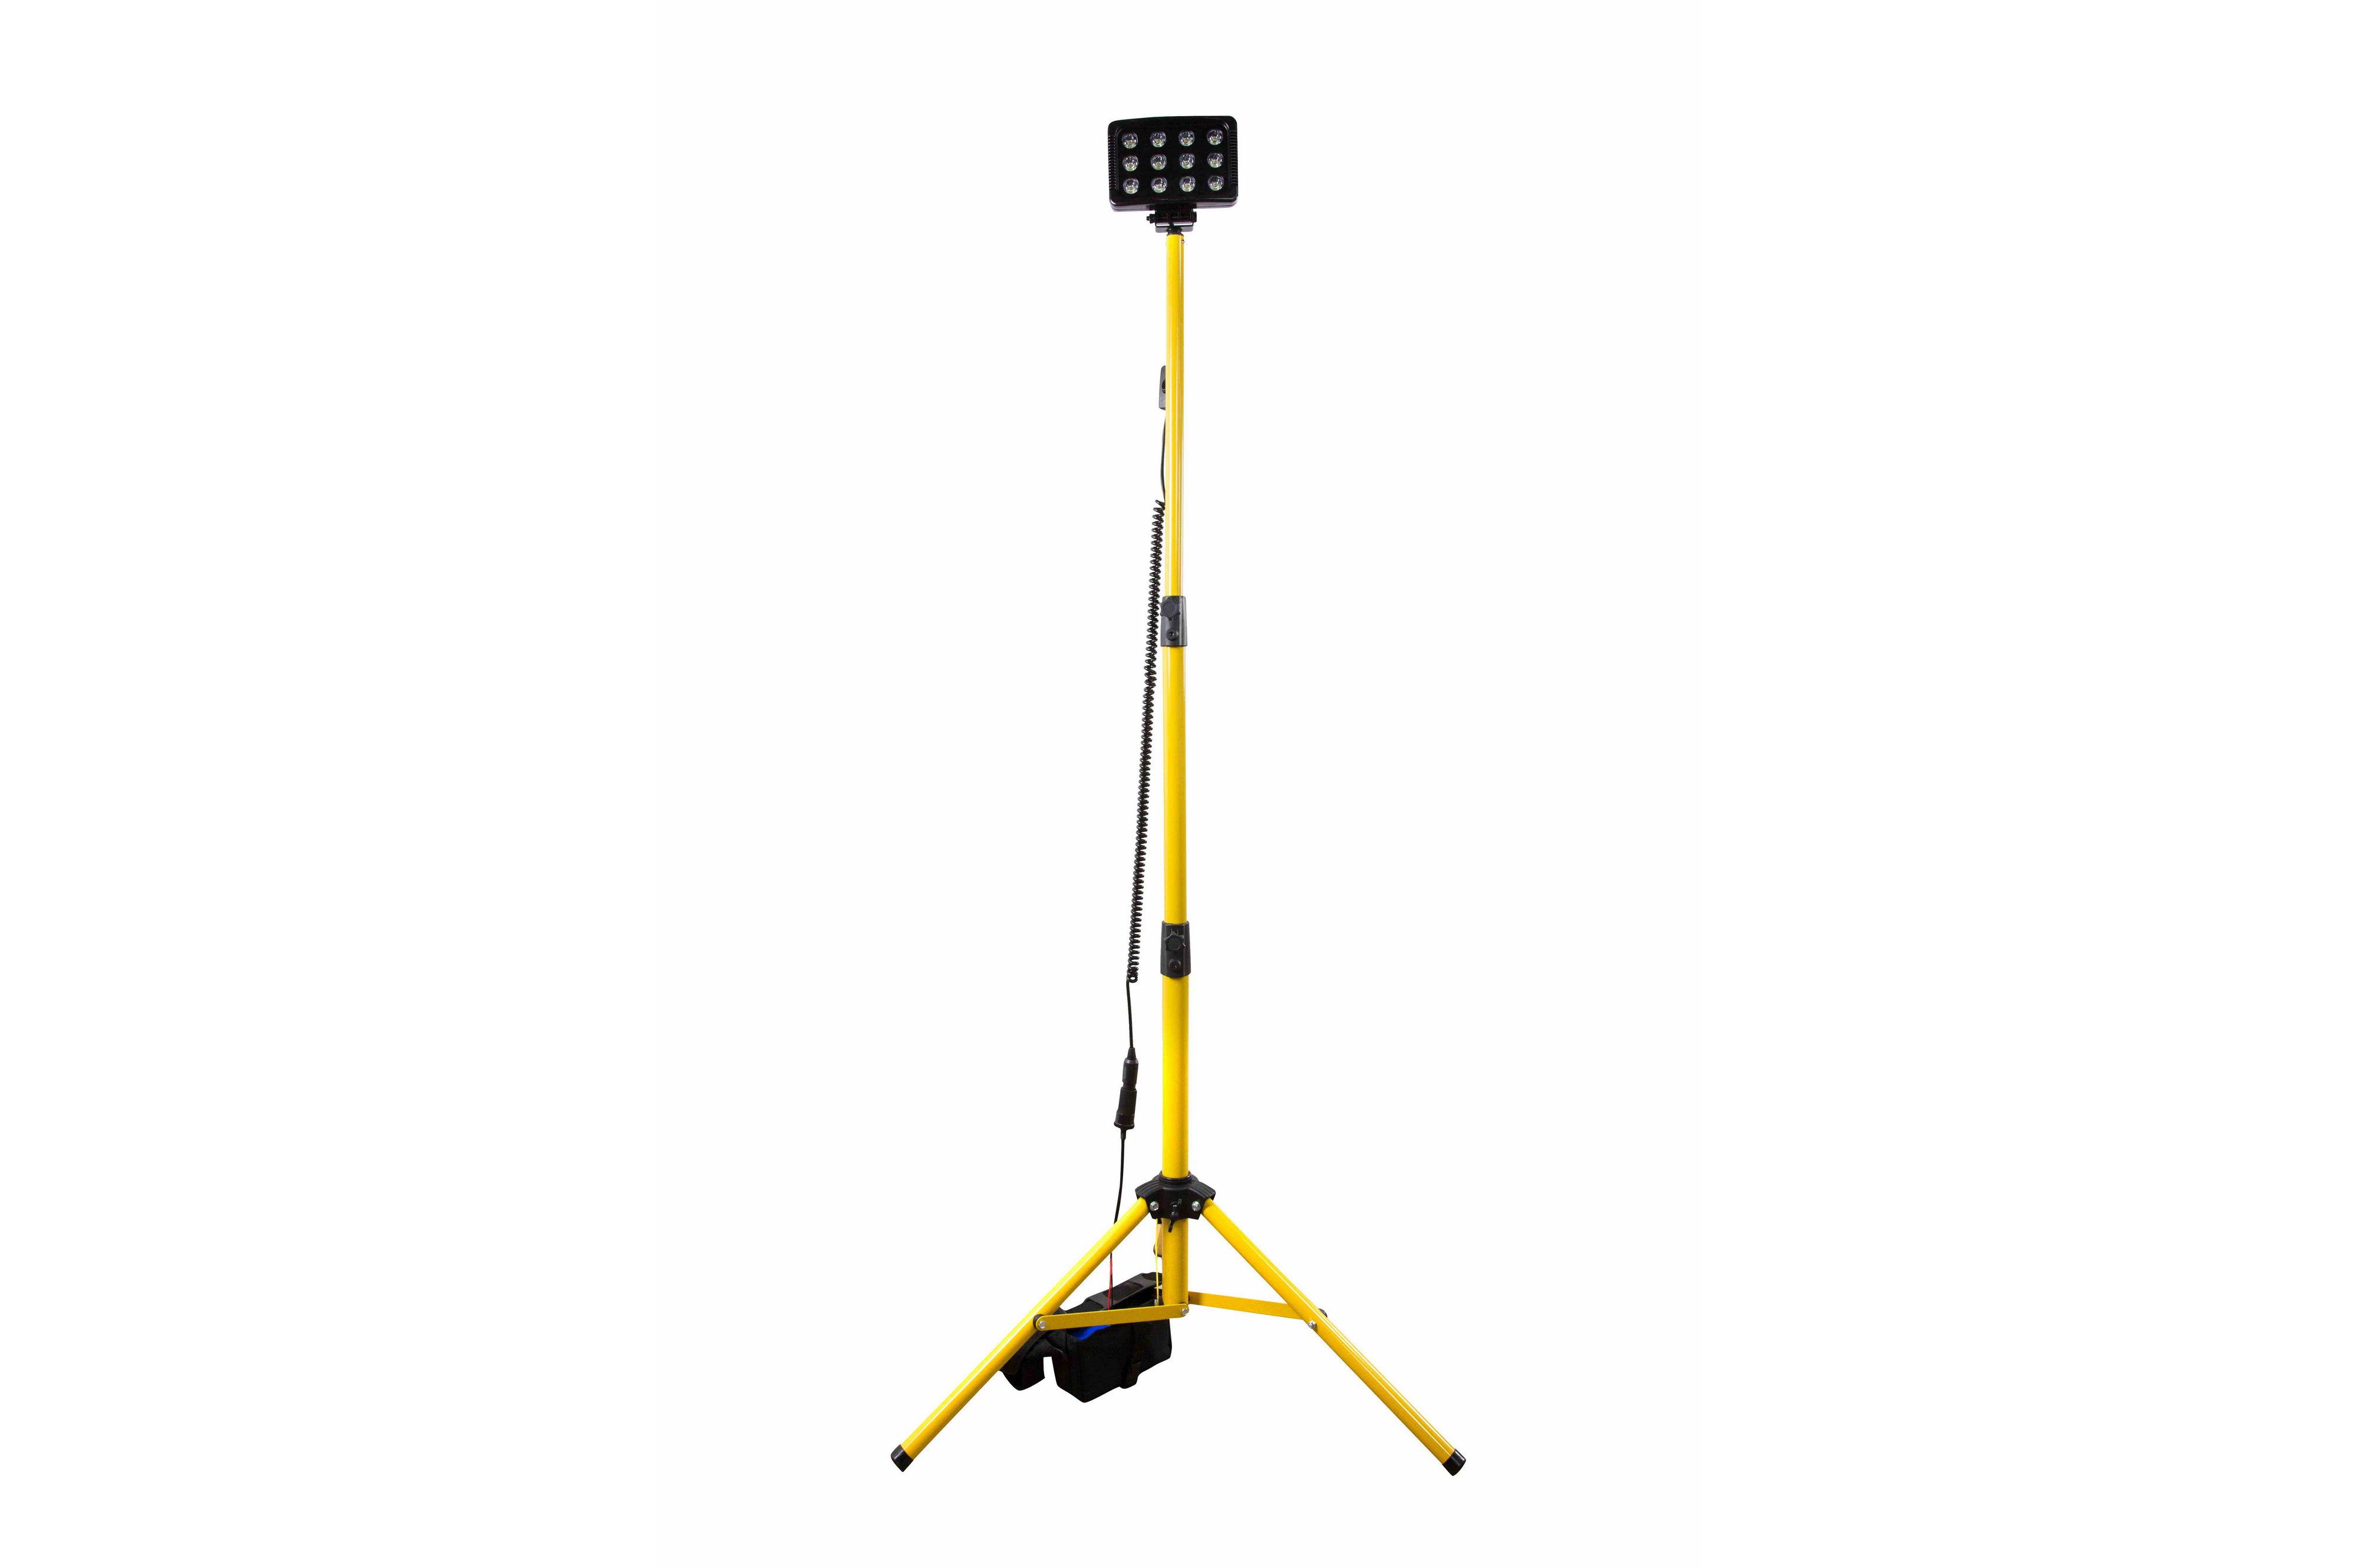 36 Watt Portable Rechargeable Led Tripod Lighting System